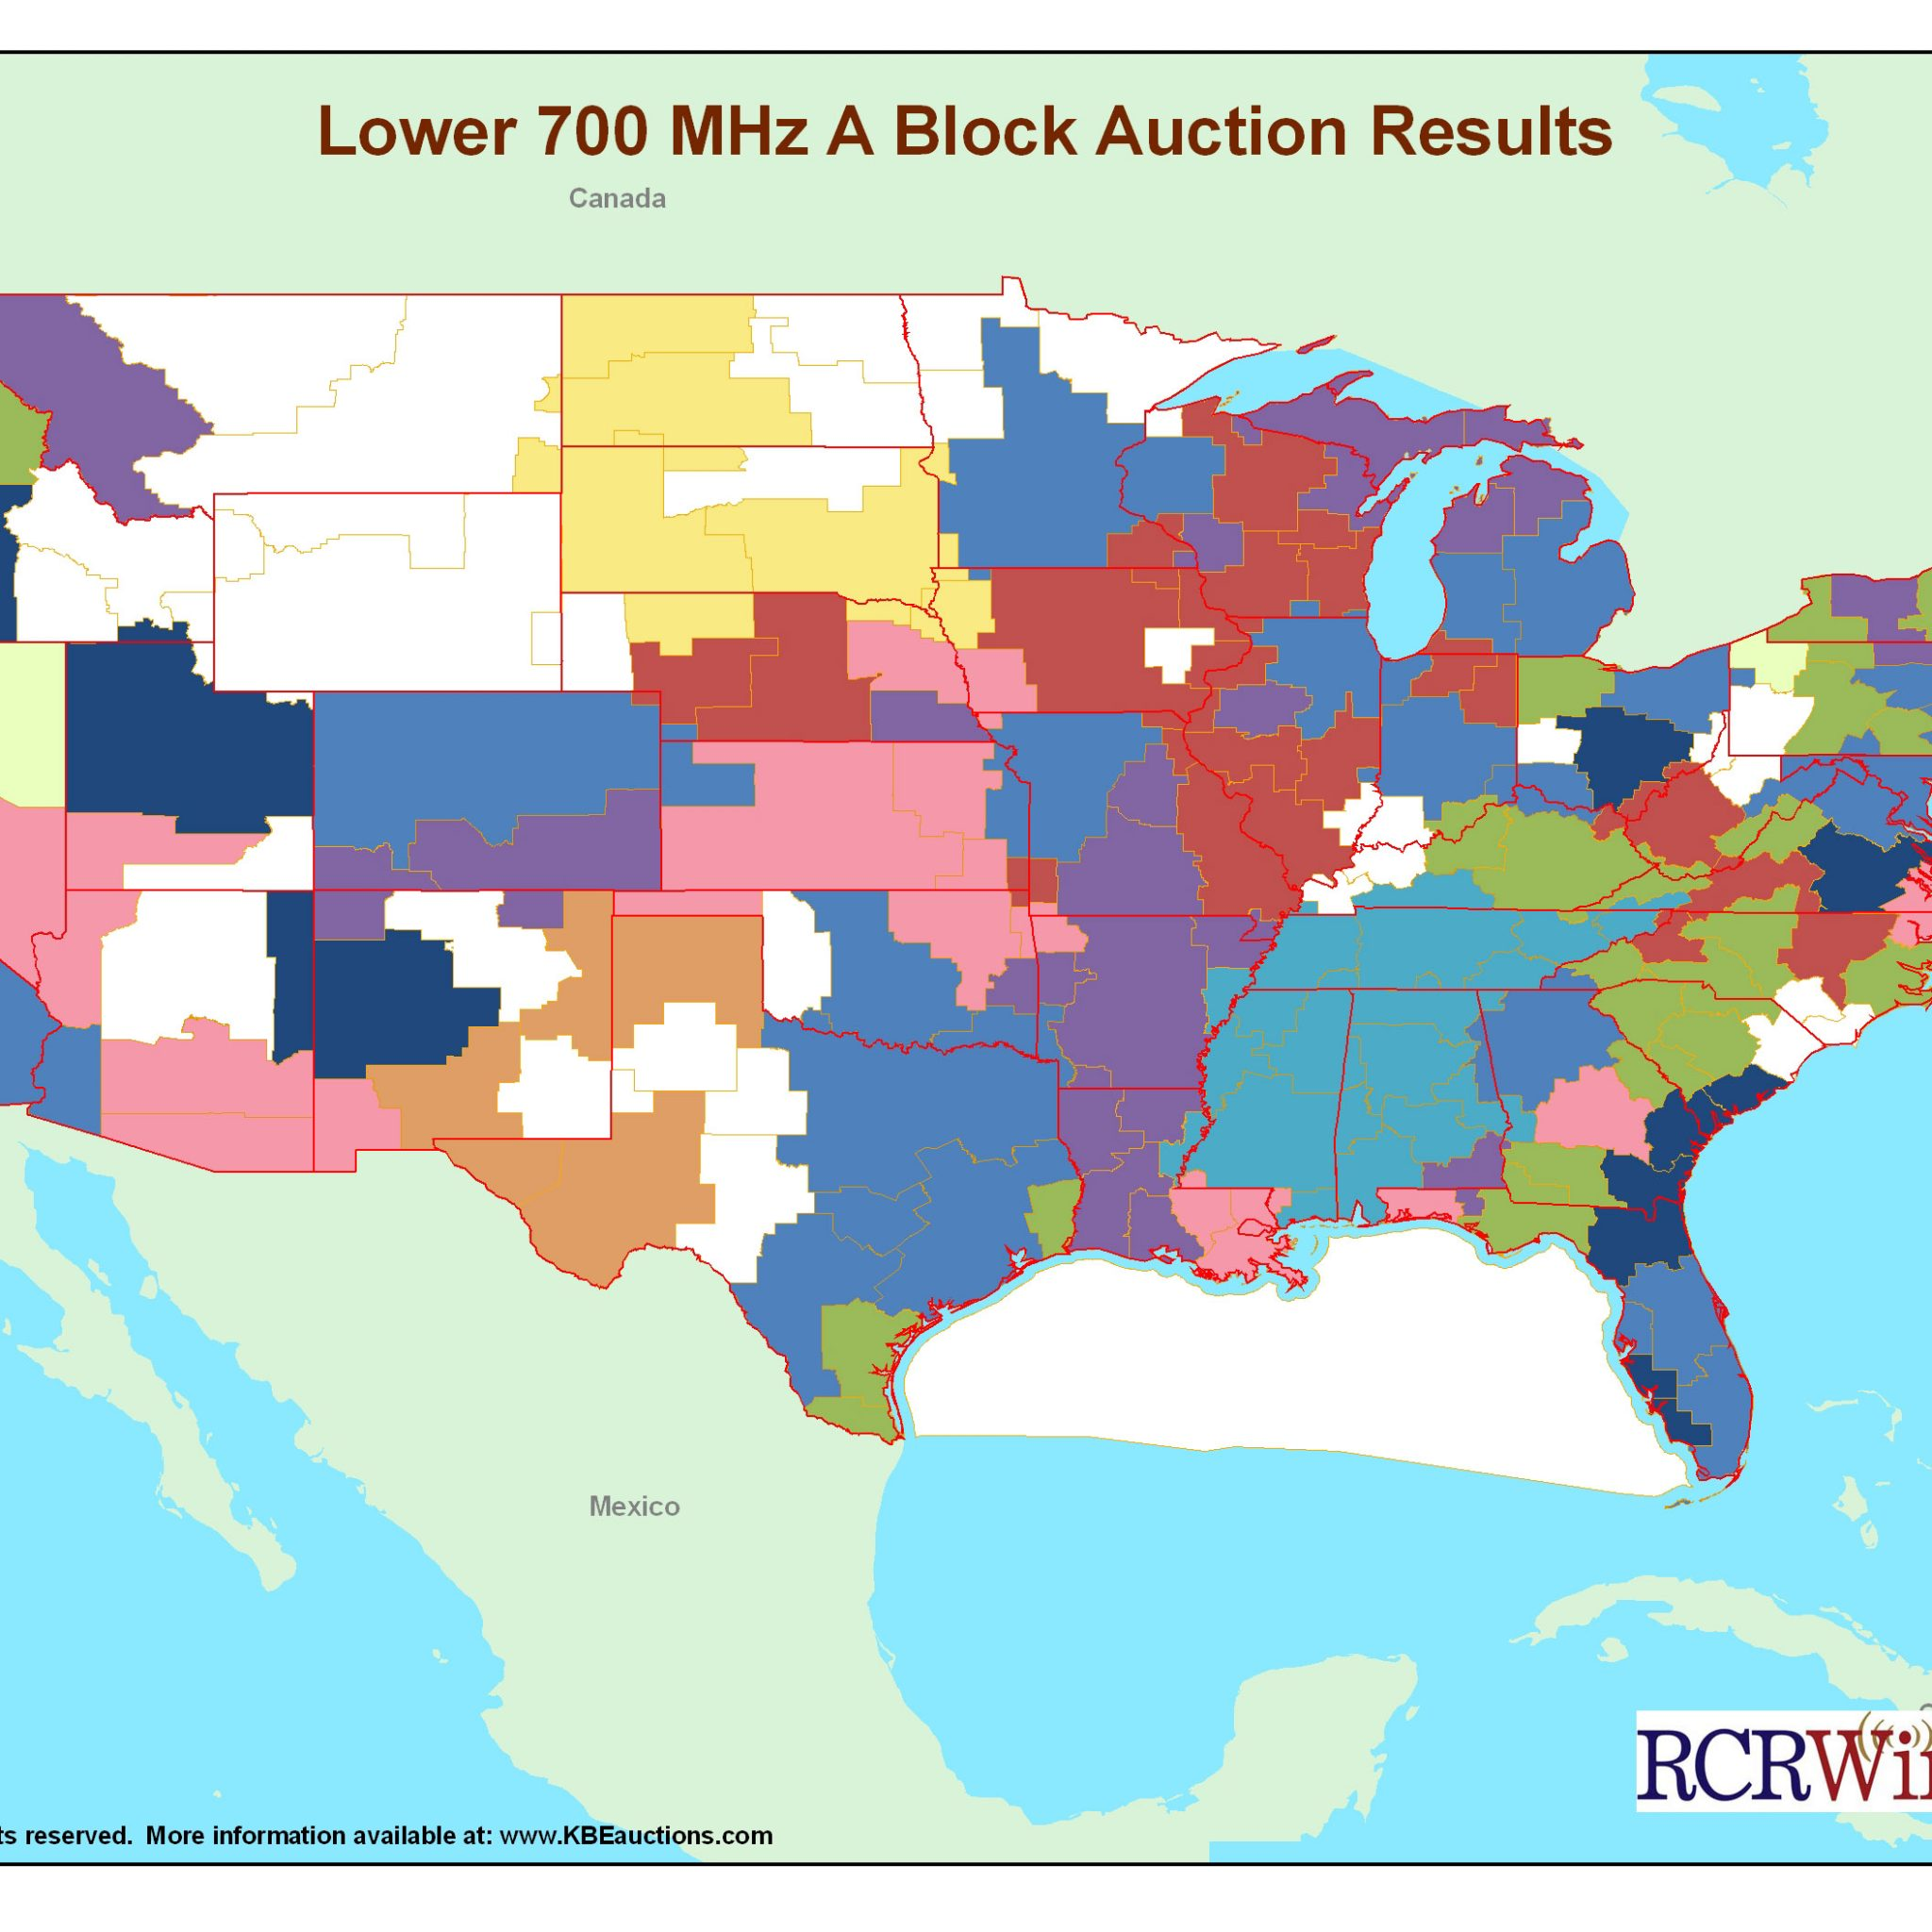 FCC Moves Forward On Lower 700 MHz Interoperability